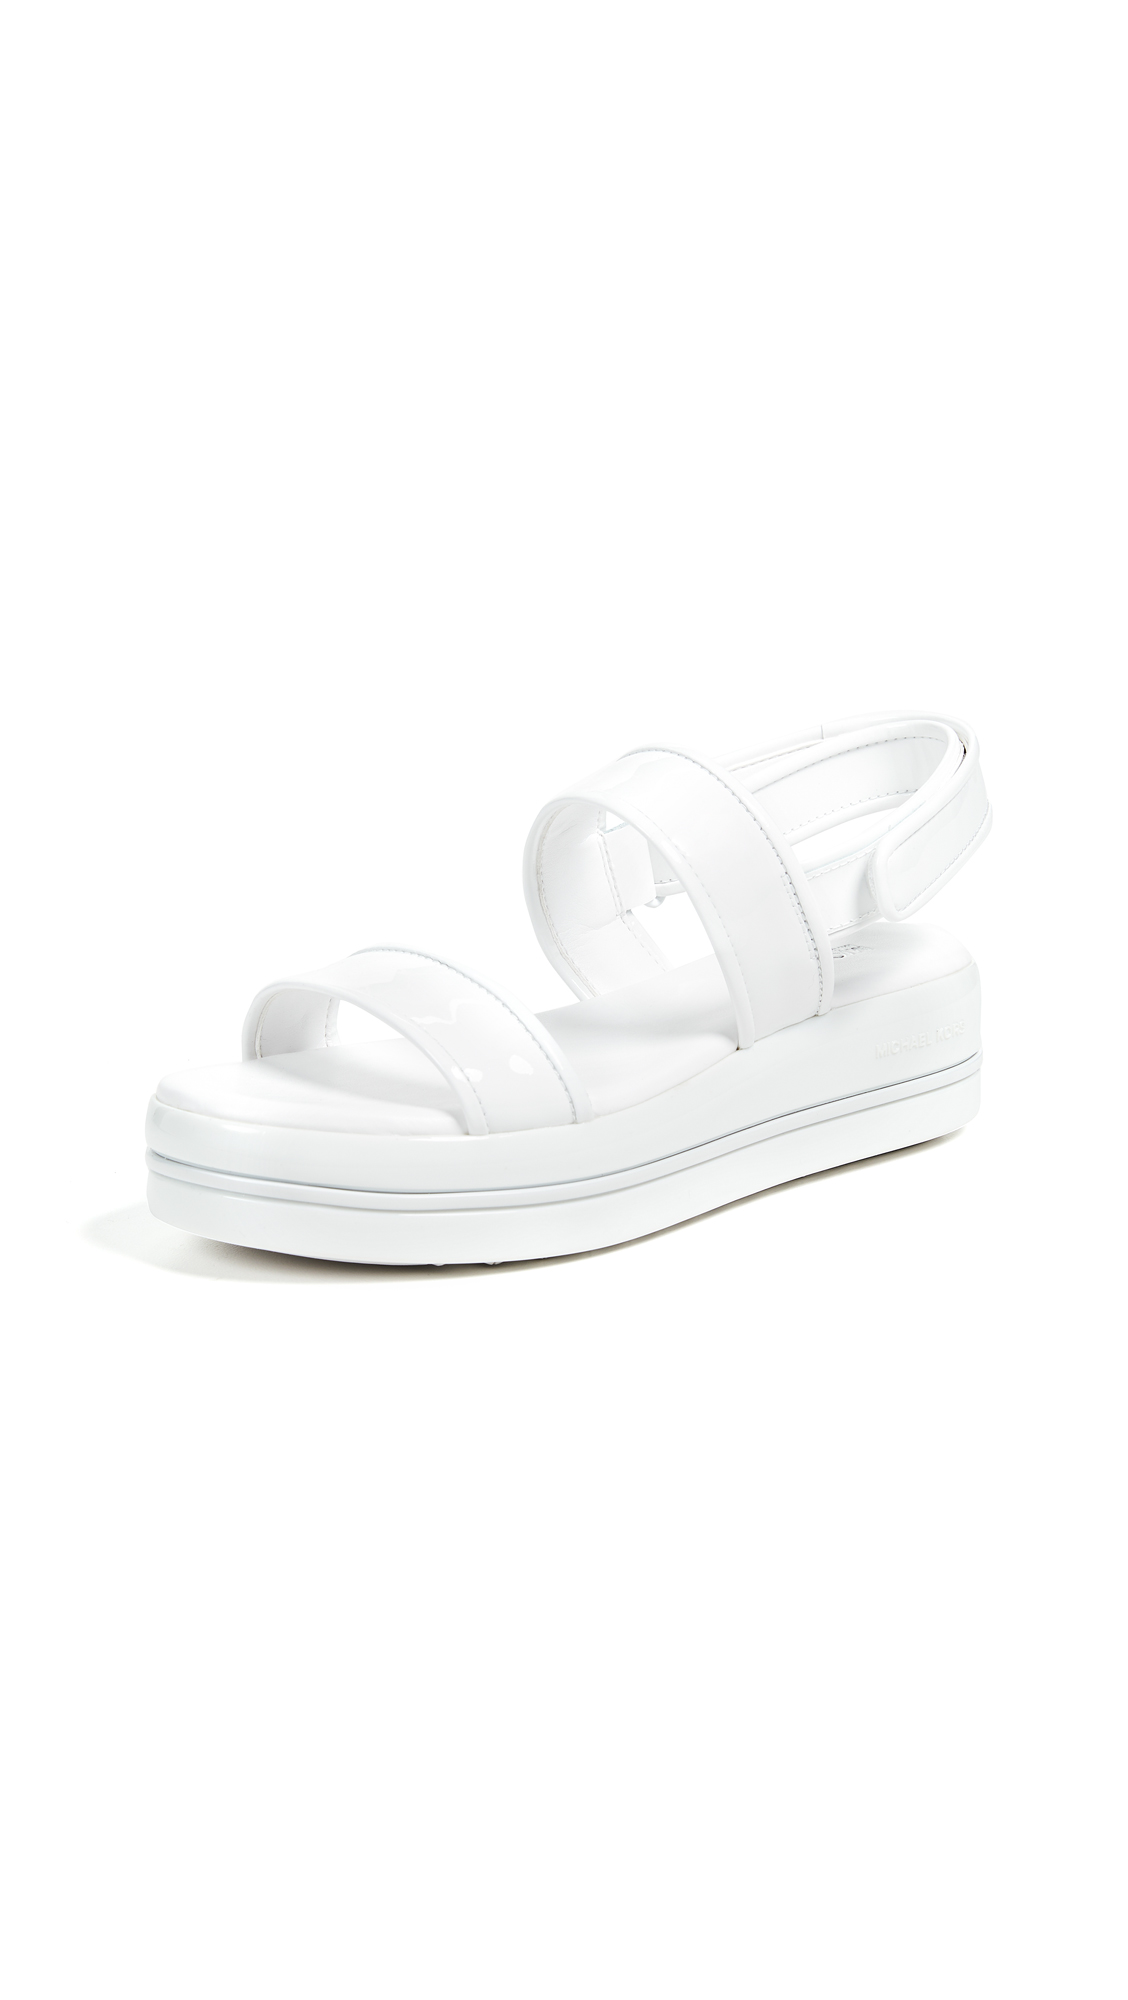 MICHAEL Michael Kors Peggy Platform Sandals - Optic White